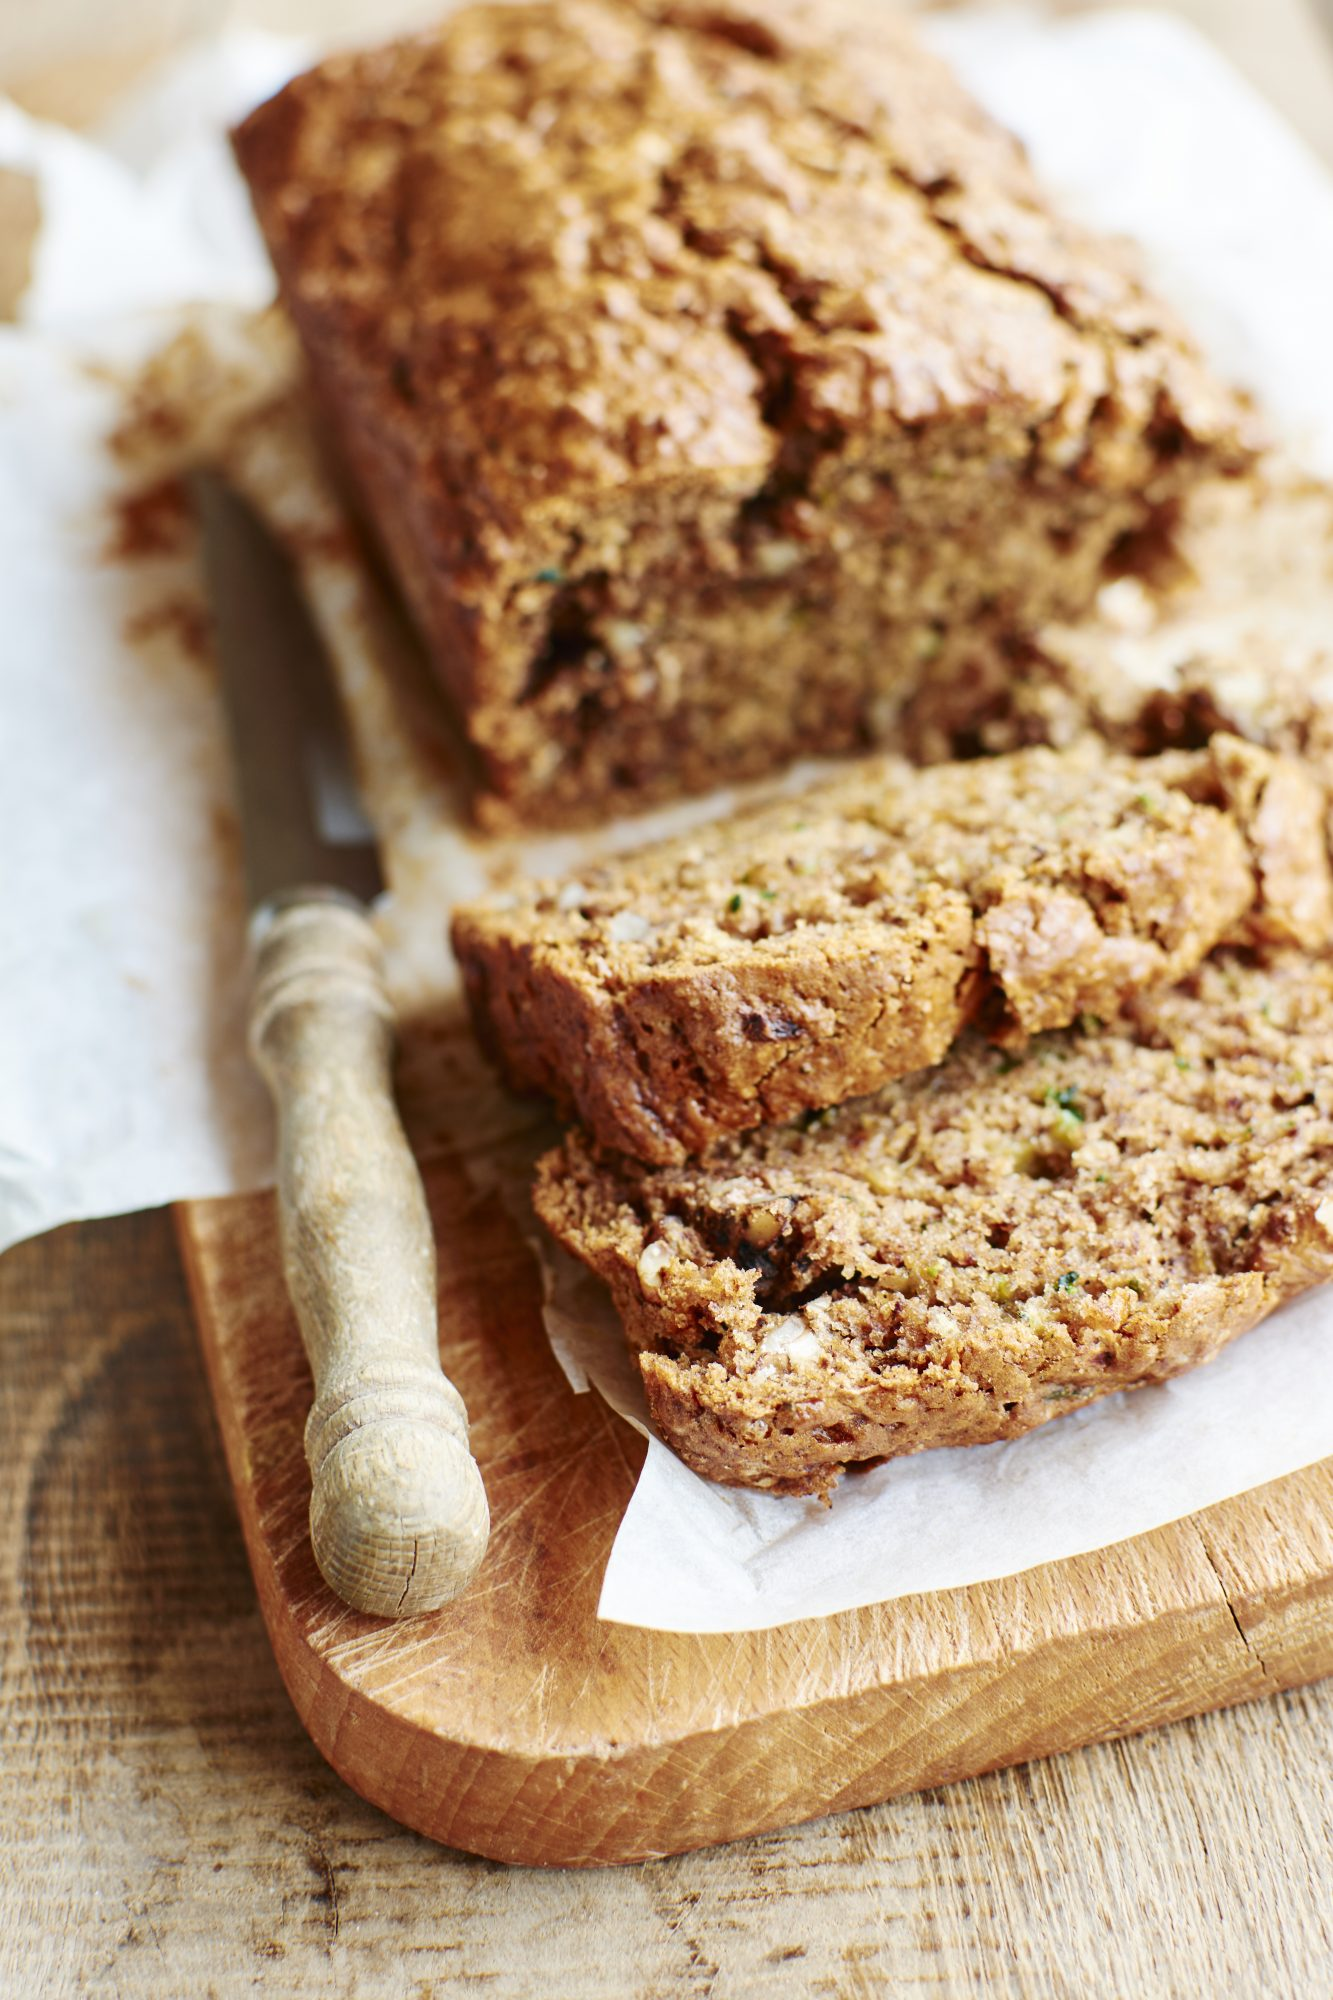 How to Make the Best Zucchini Bread